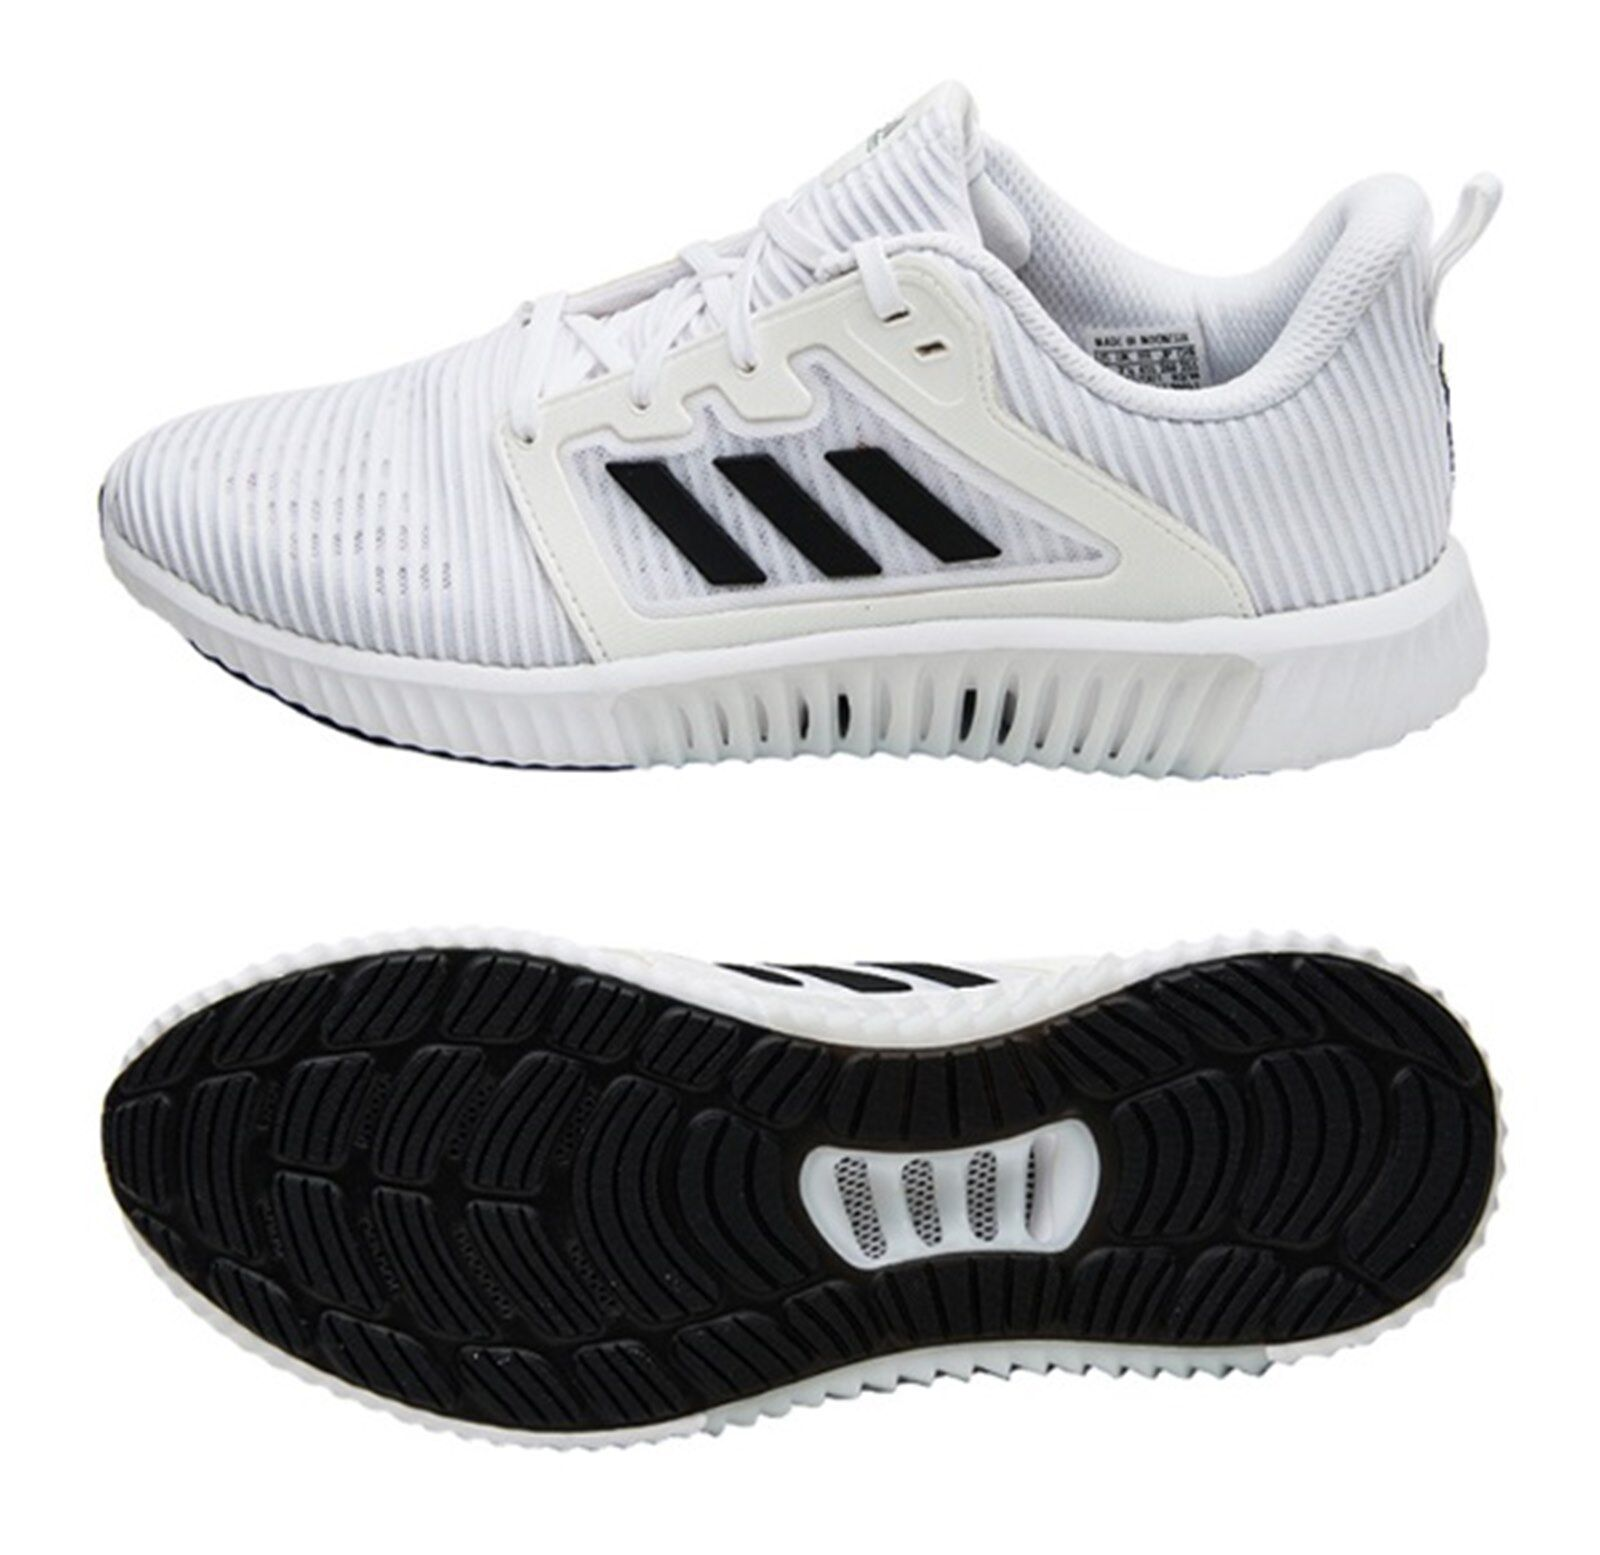 Adidas Men Climacool VENT Training Shoes Running White Sneakers Shoe CG3914